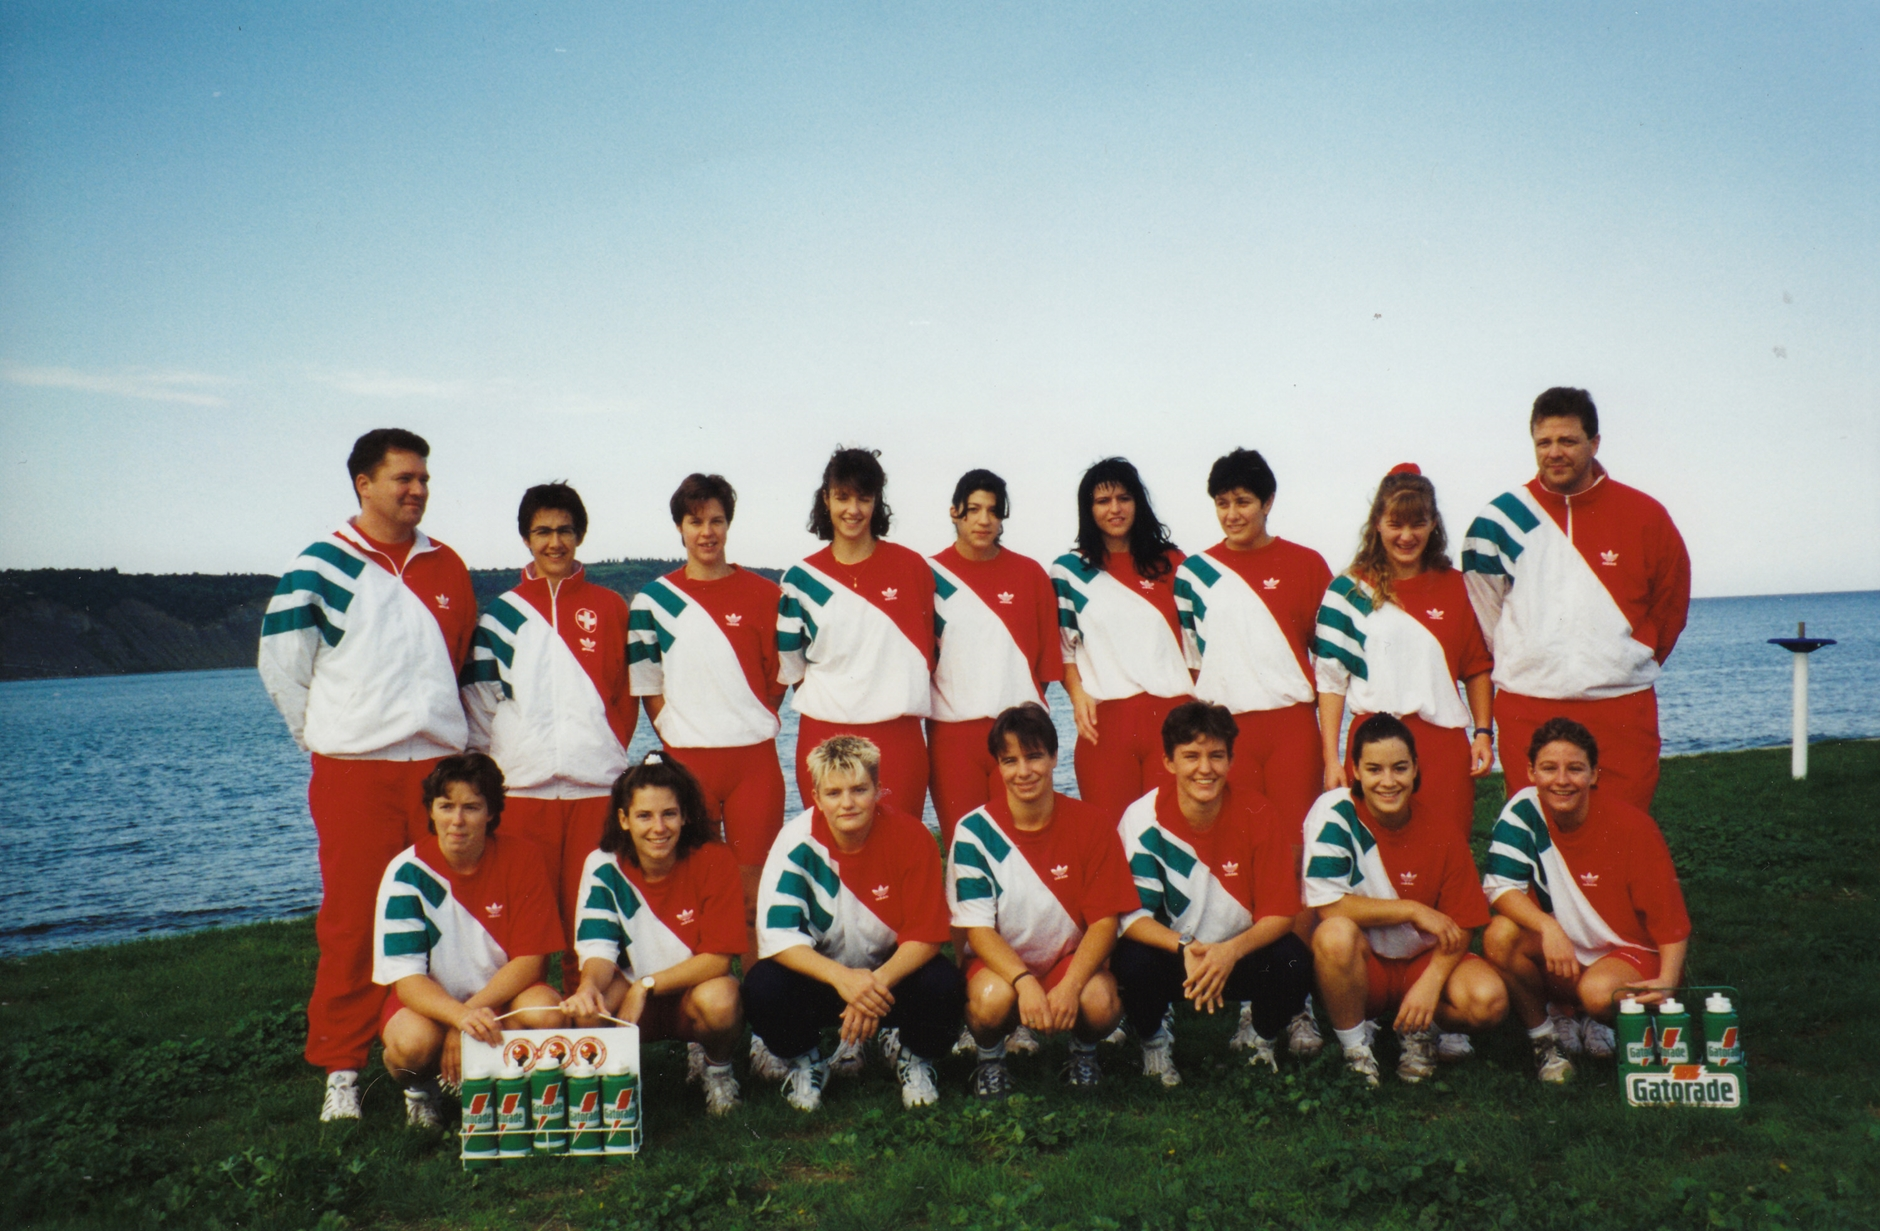 Teamfoto Frauen Nati-A, Trainingslager in Ljubljana  September 1995